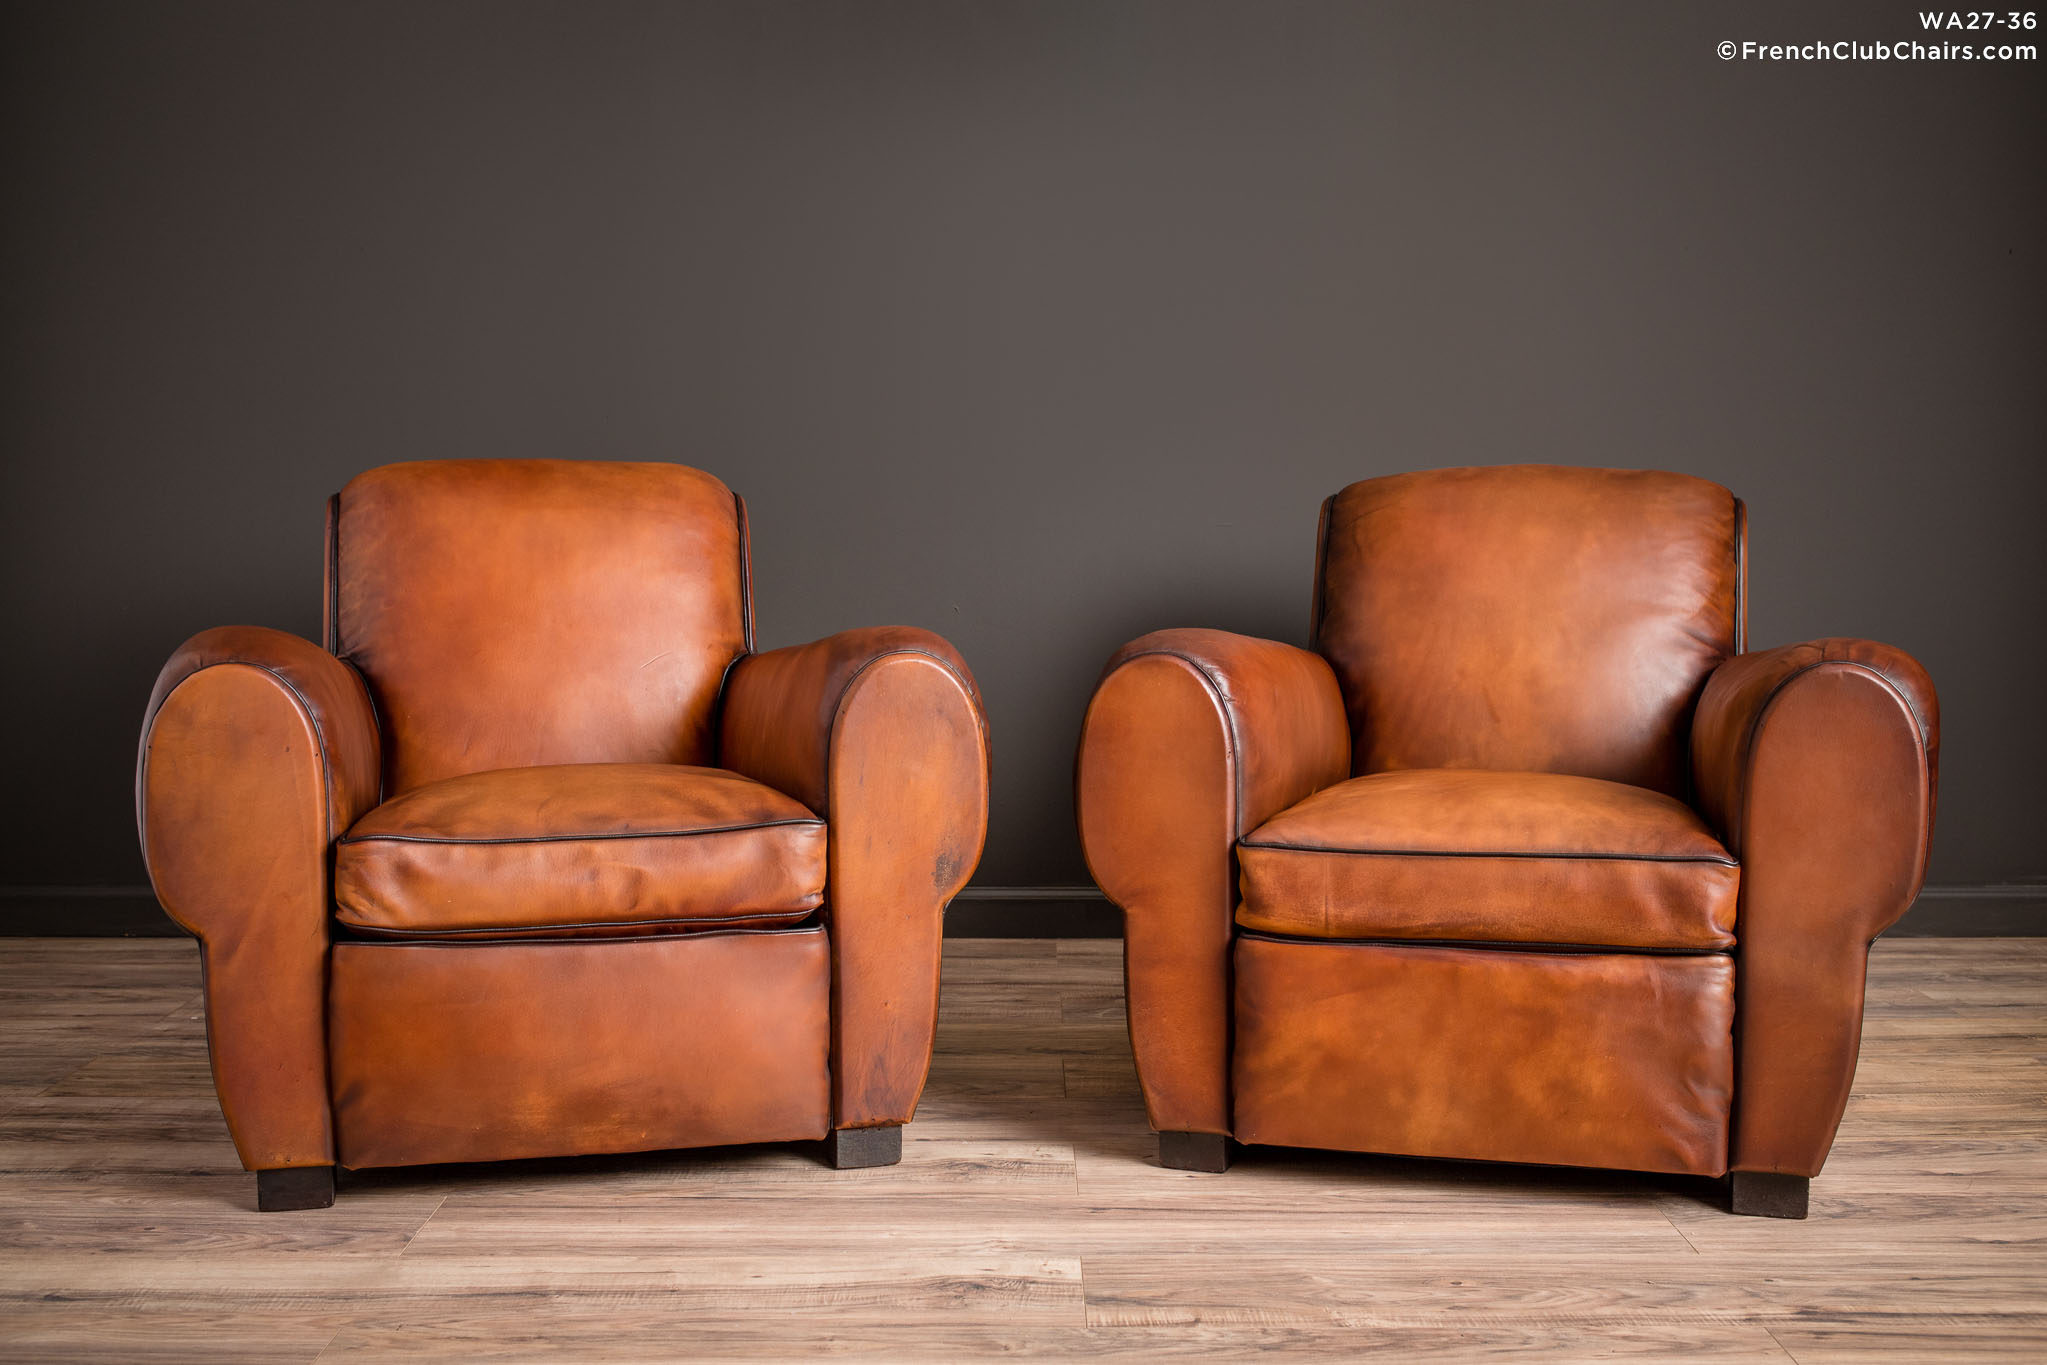 WA_27-36_Liseaux_Giant_Dark_Rollback_Pair_R_1TQ-v01-williams-antiks-leather-french-club-chair-wa_fcccom